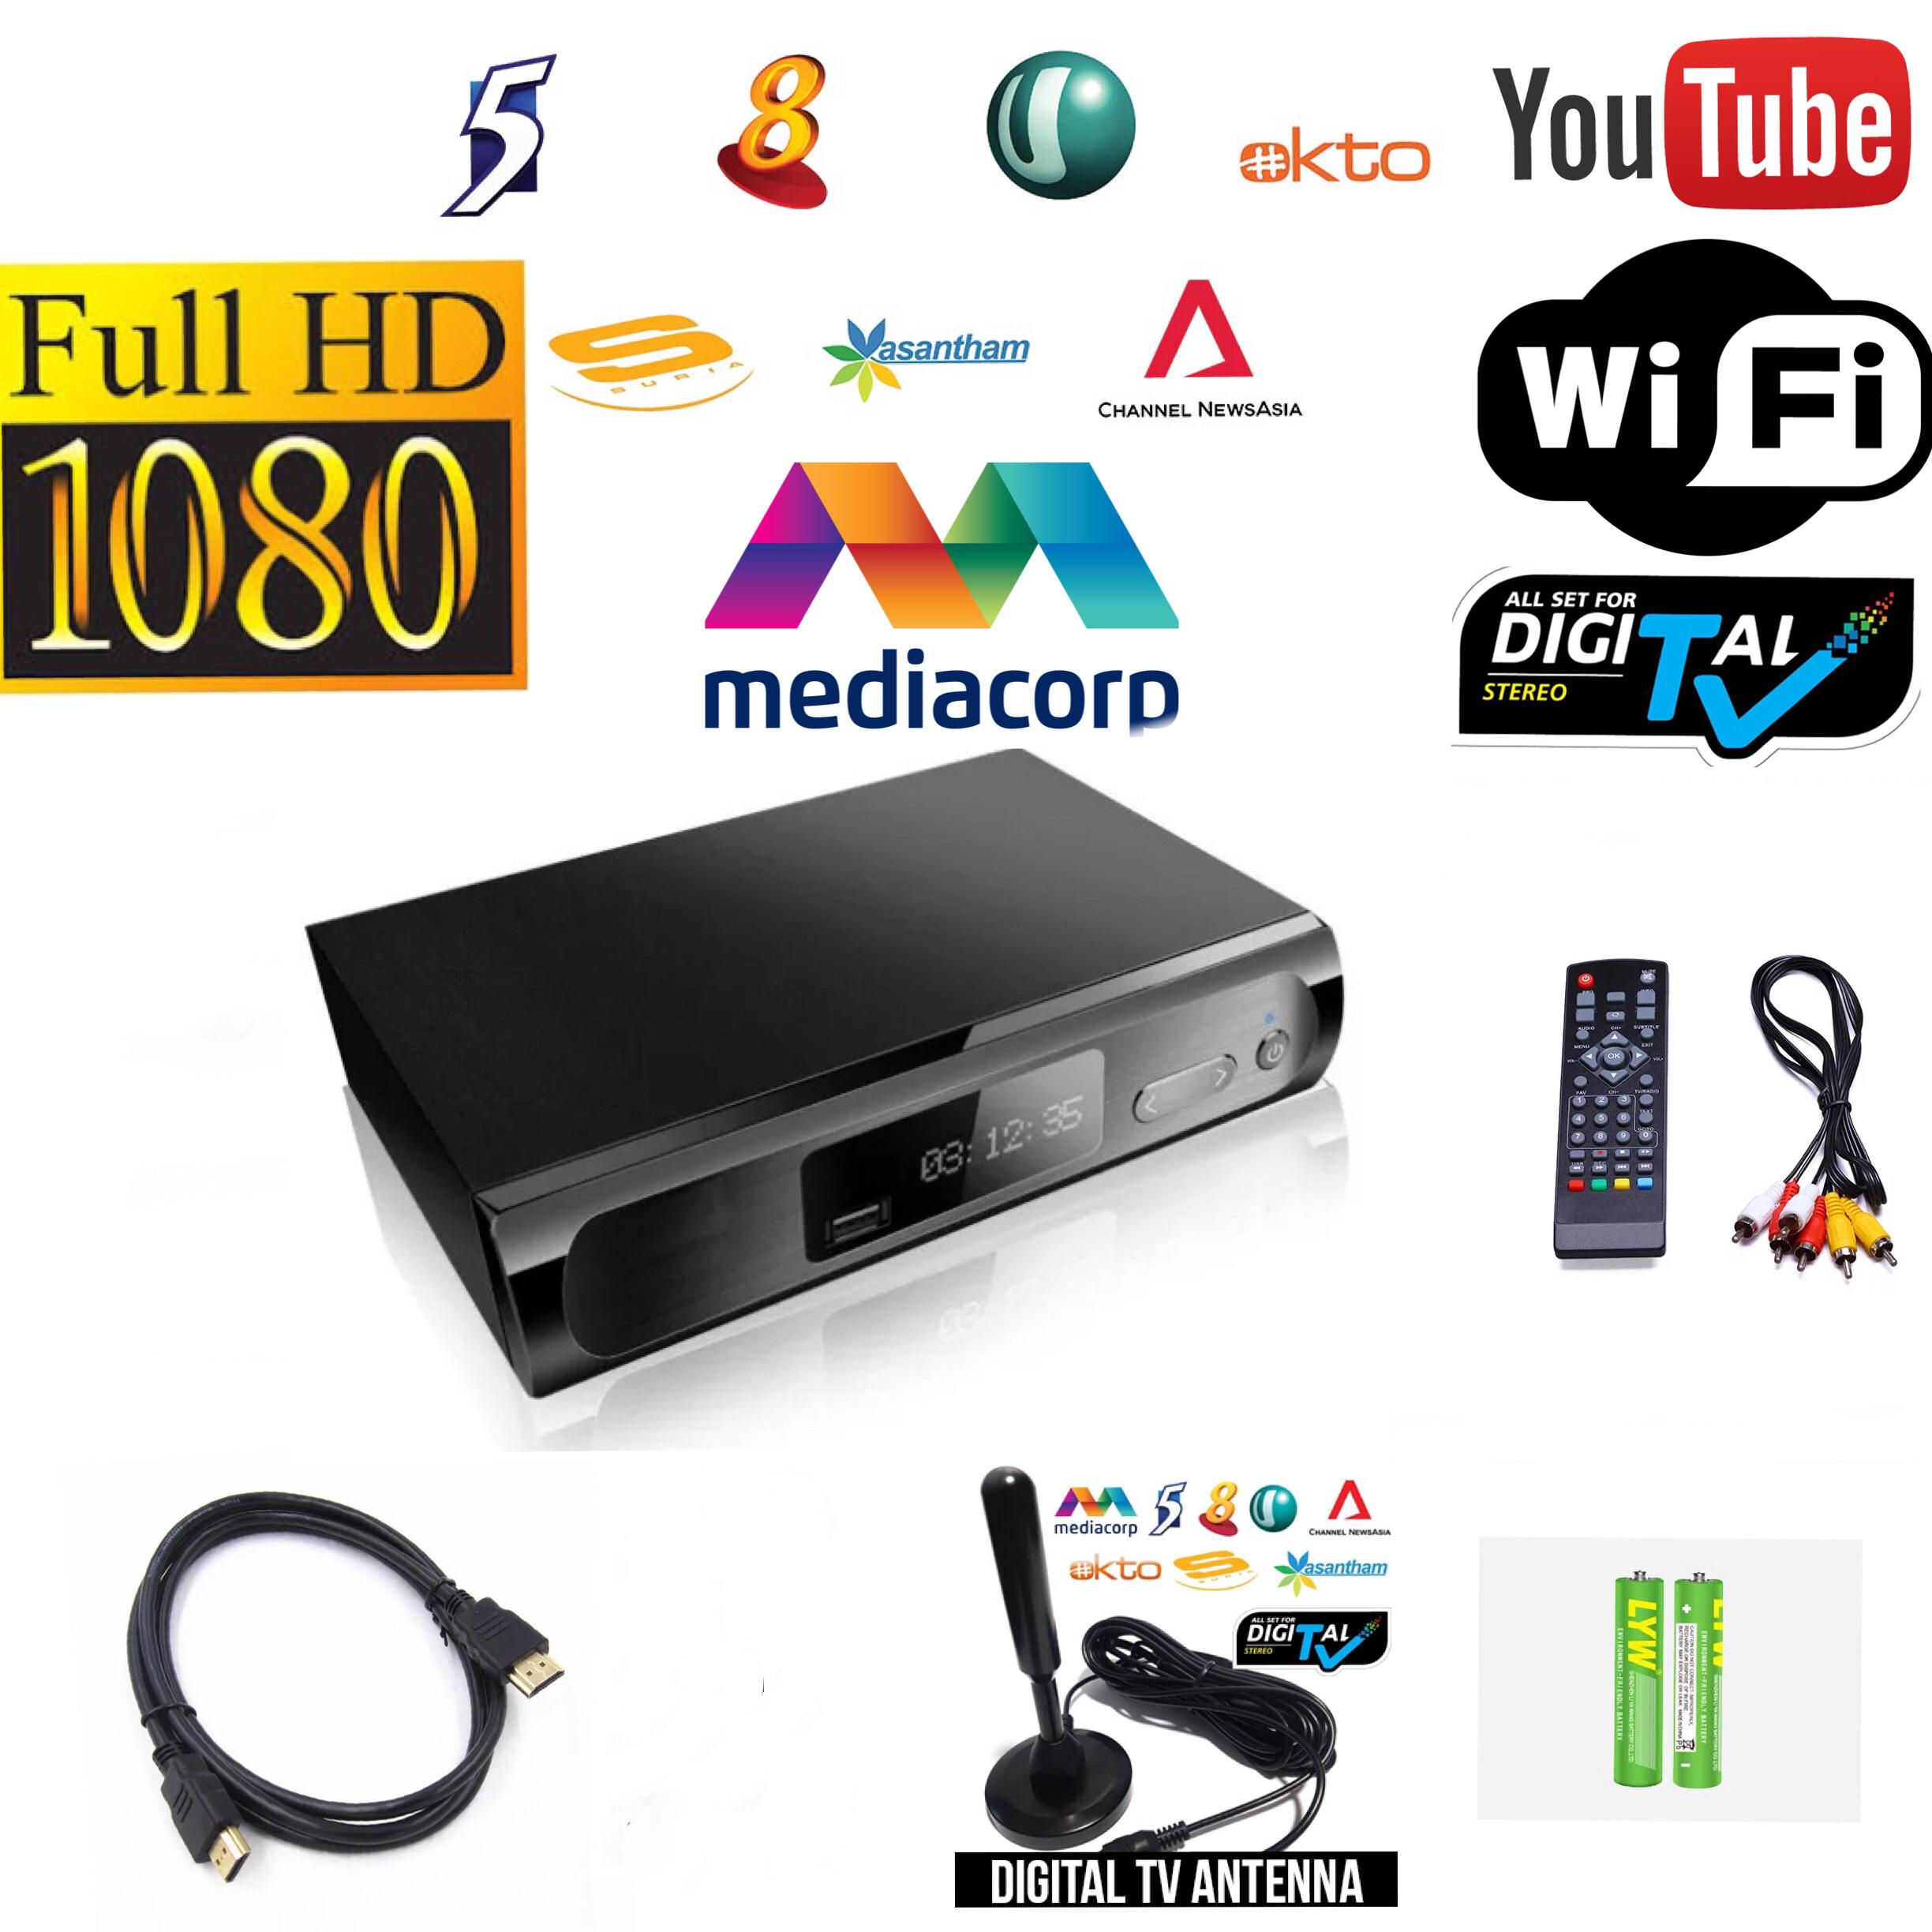 TV Receivers - Buy TV Receivers at Best Price in Singapore | www